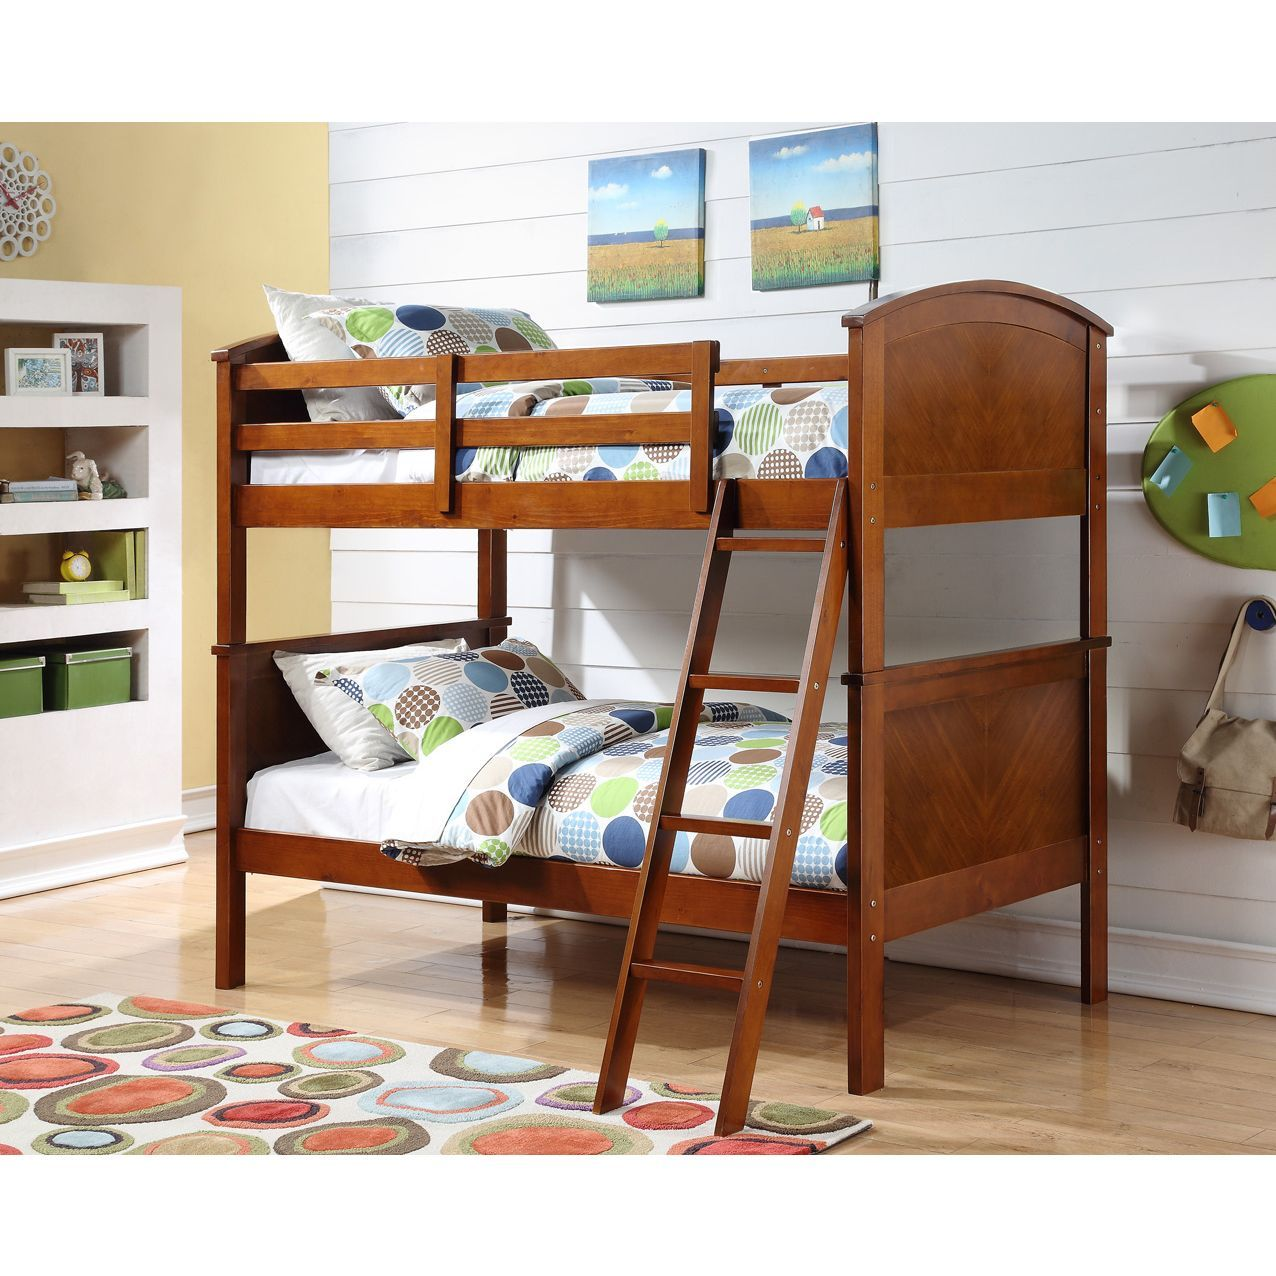 Oak loft bed with desk  Donco Kids Twin over Twin Arch Panel Oak Finished Bunk Bed Twin